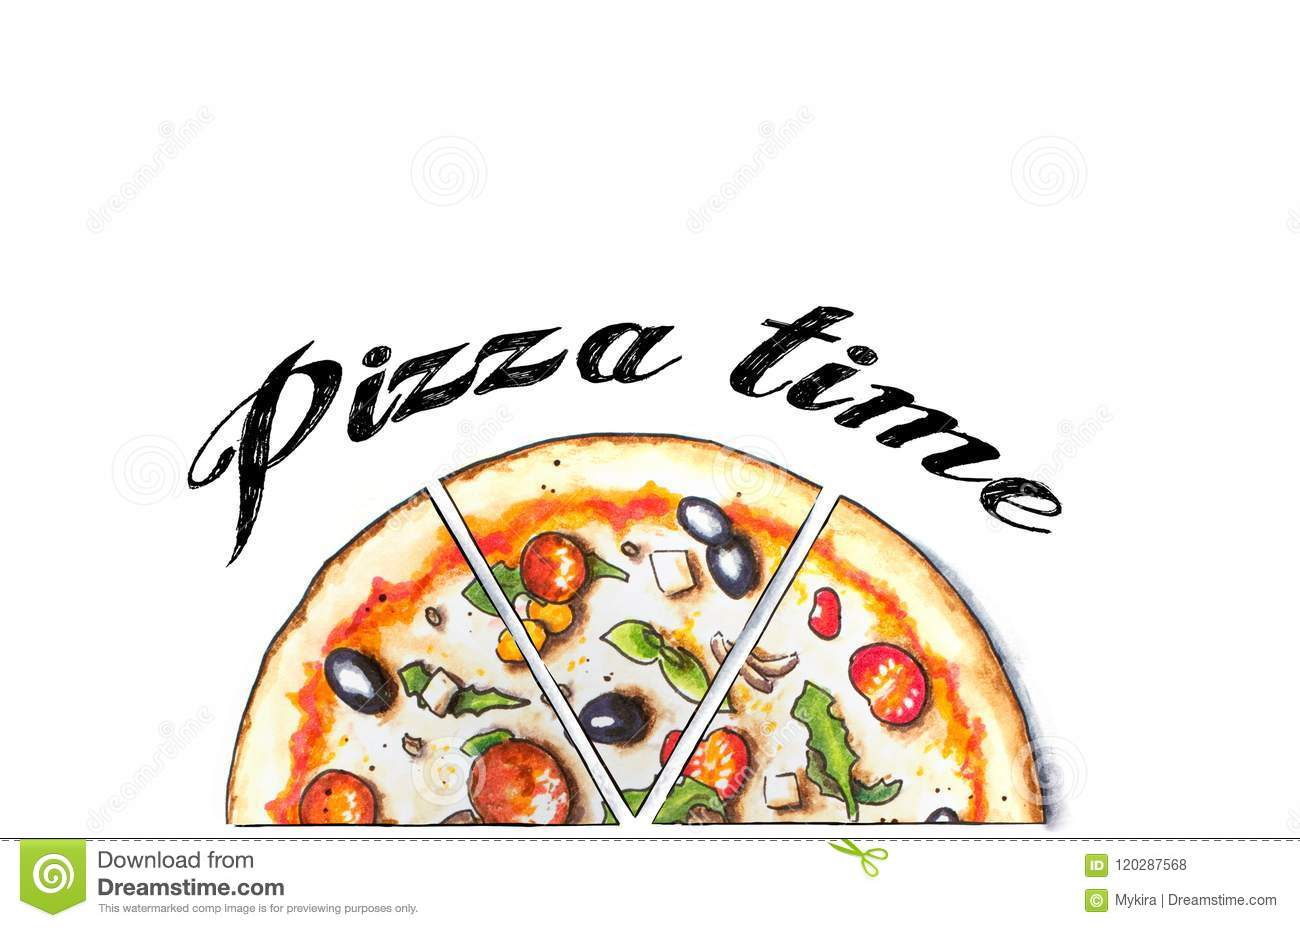 Download Hand Sketched Pepperoni Pizza Stock Illustration - Illustration of cooking, margarita: 120287568